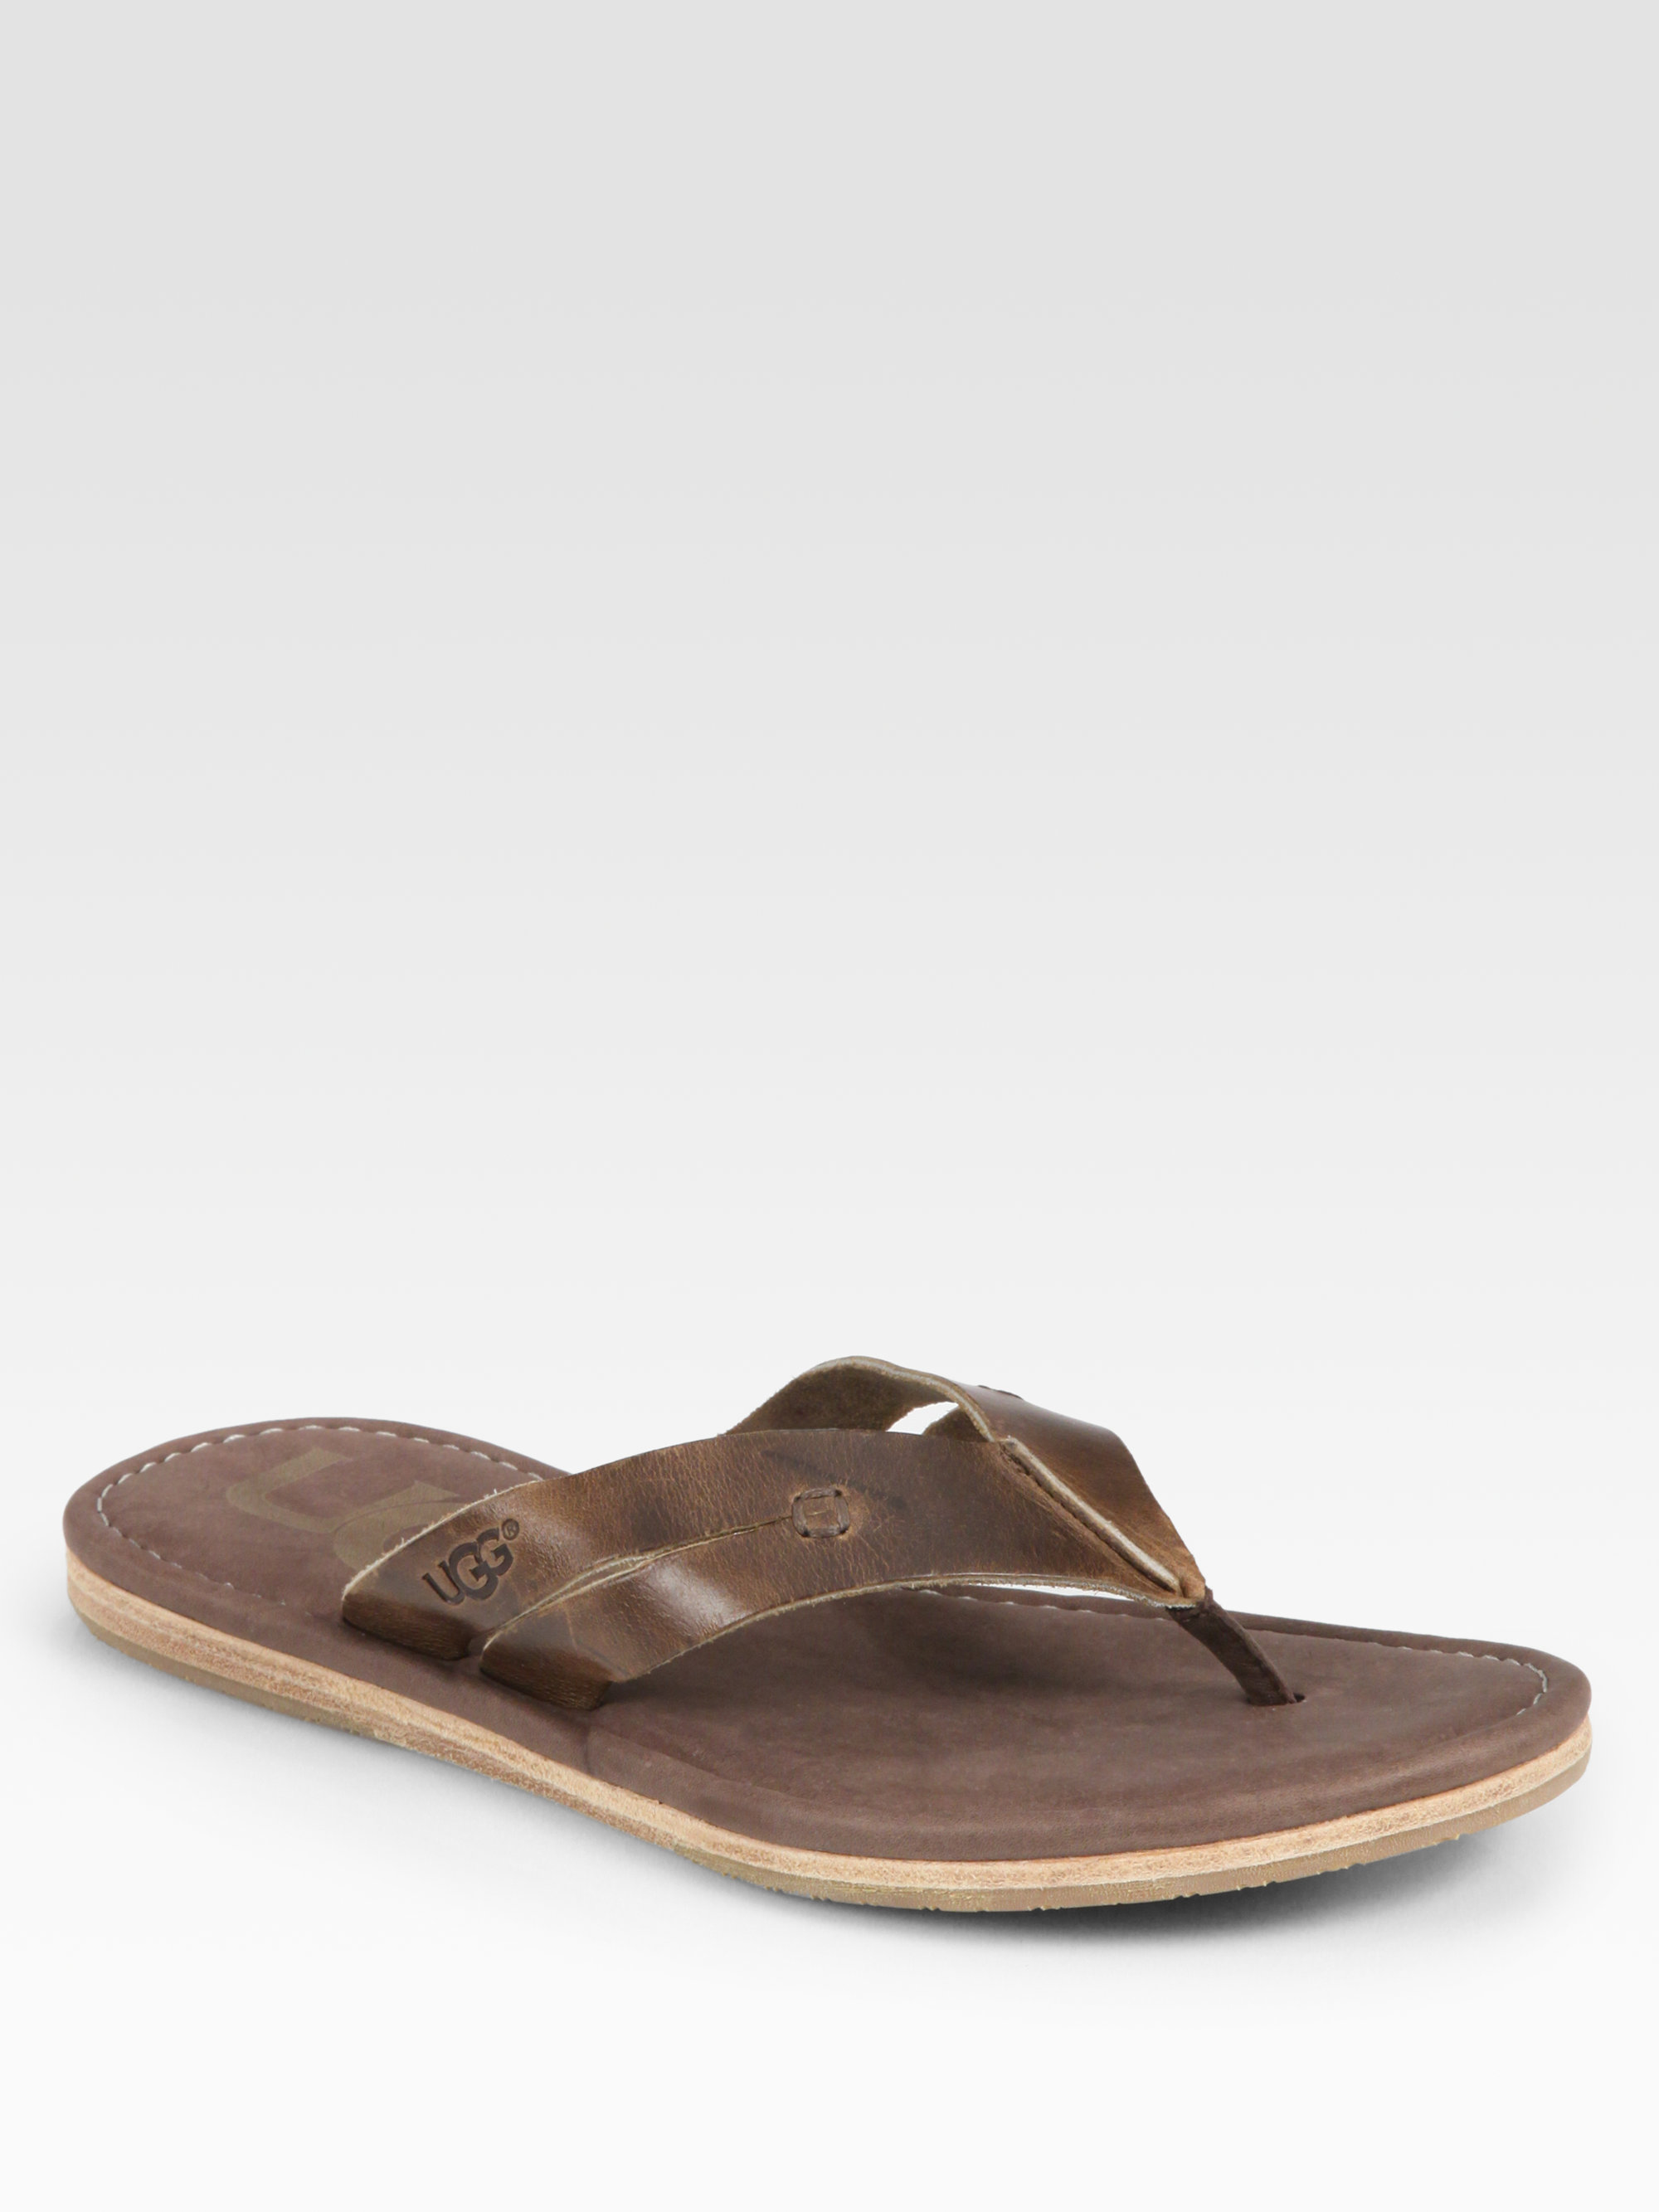 b778cbc96 Lyst - UGG Leather Thong Sandals in Brown for Men